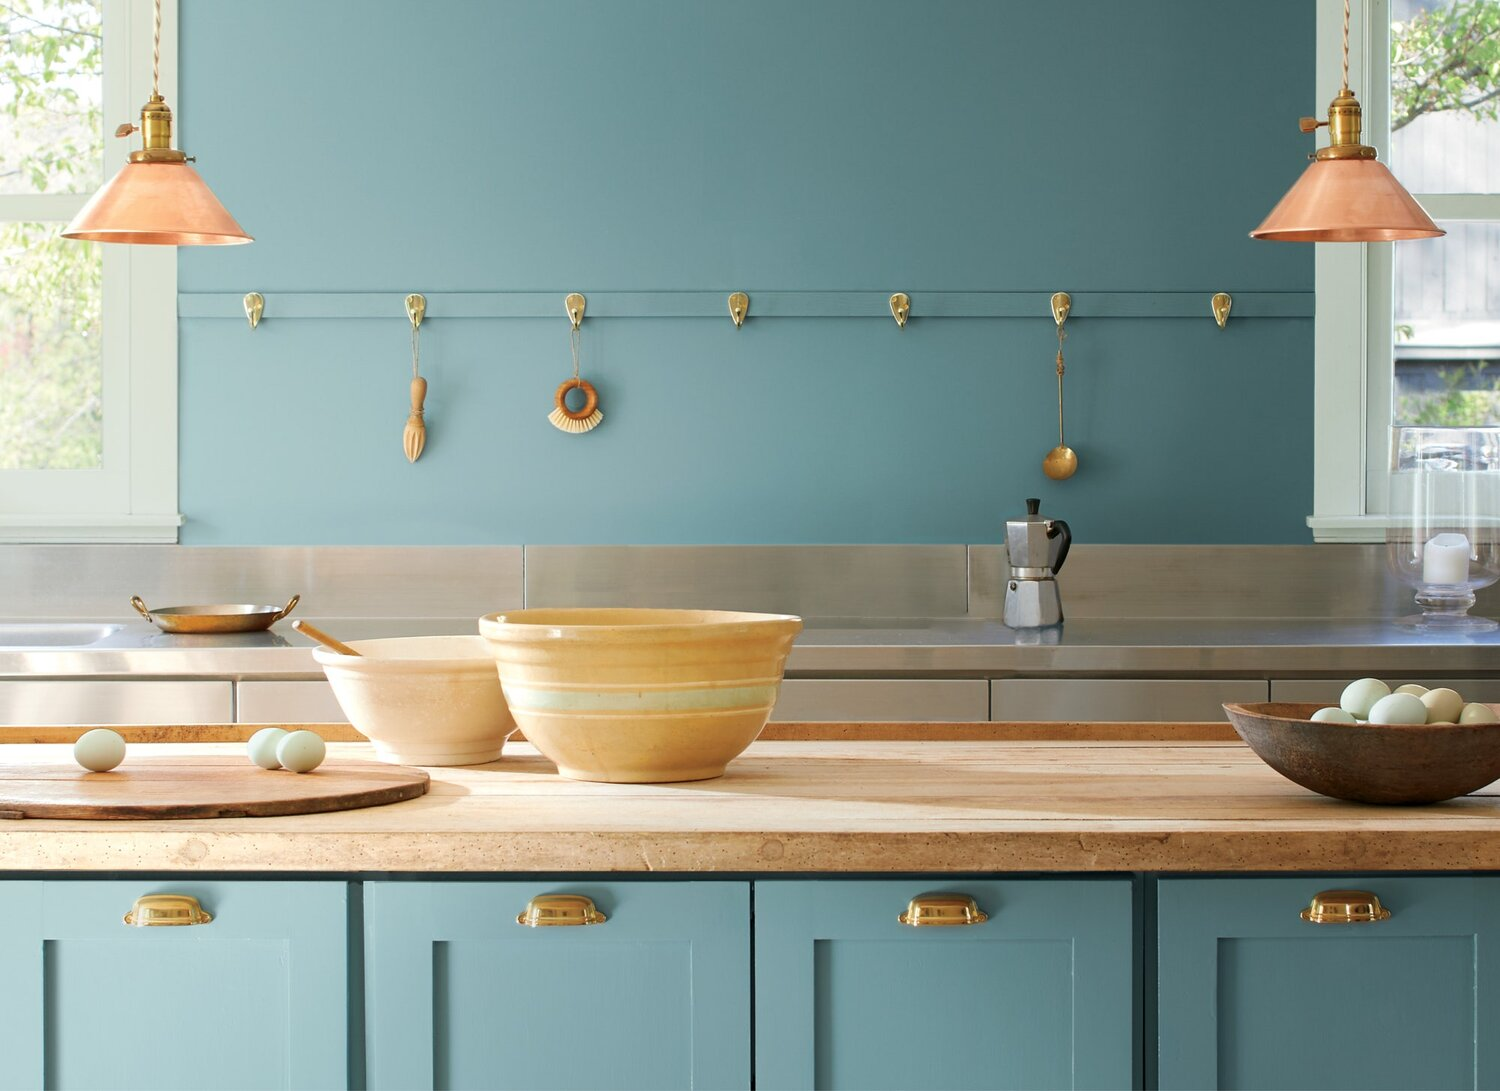 Color Trends 2021: Benjamin Moore Color of the Year Aegean Teal - The Nordroom